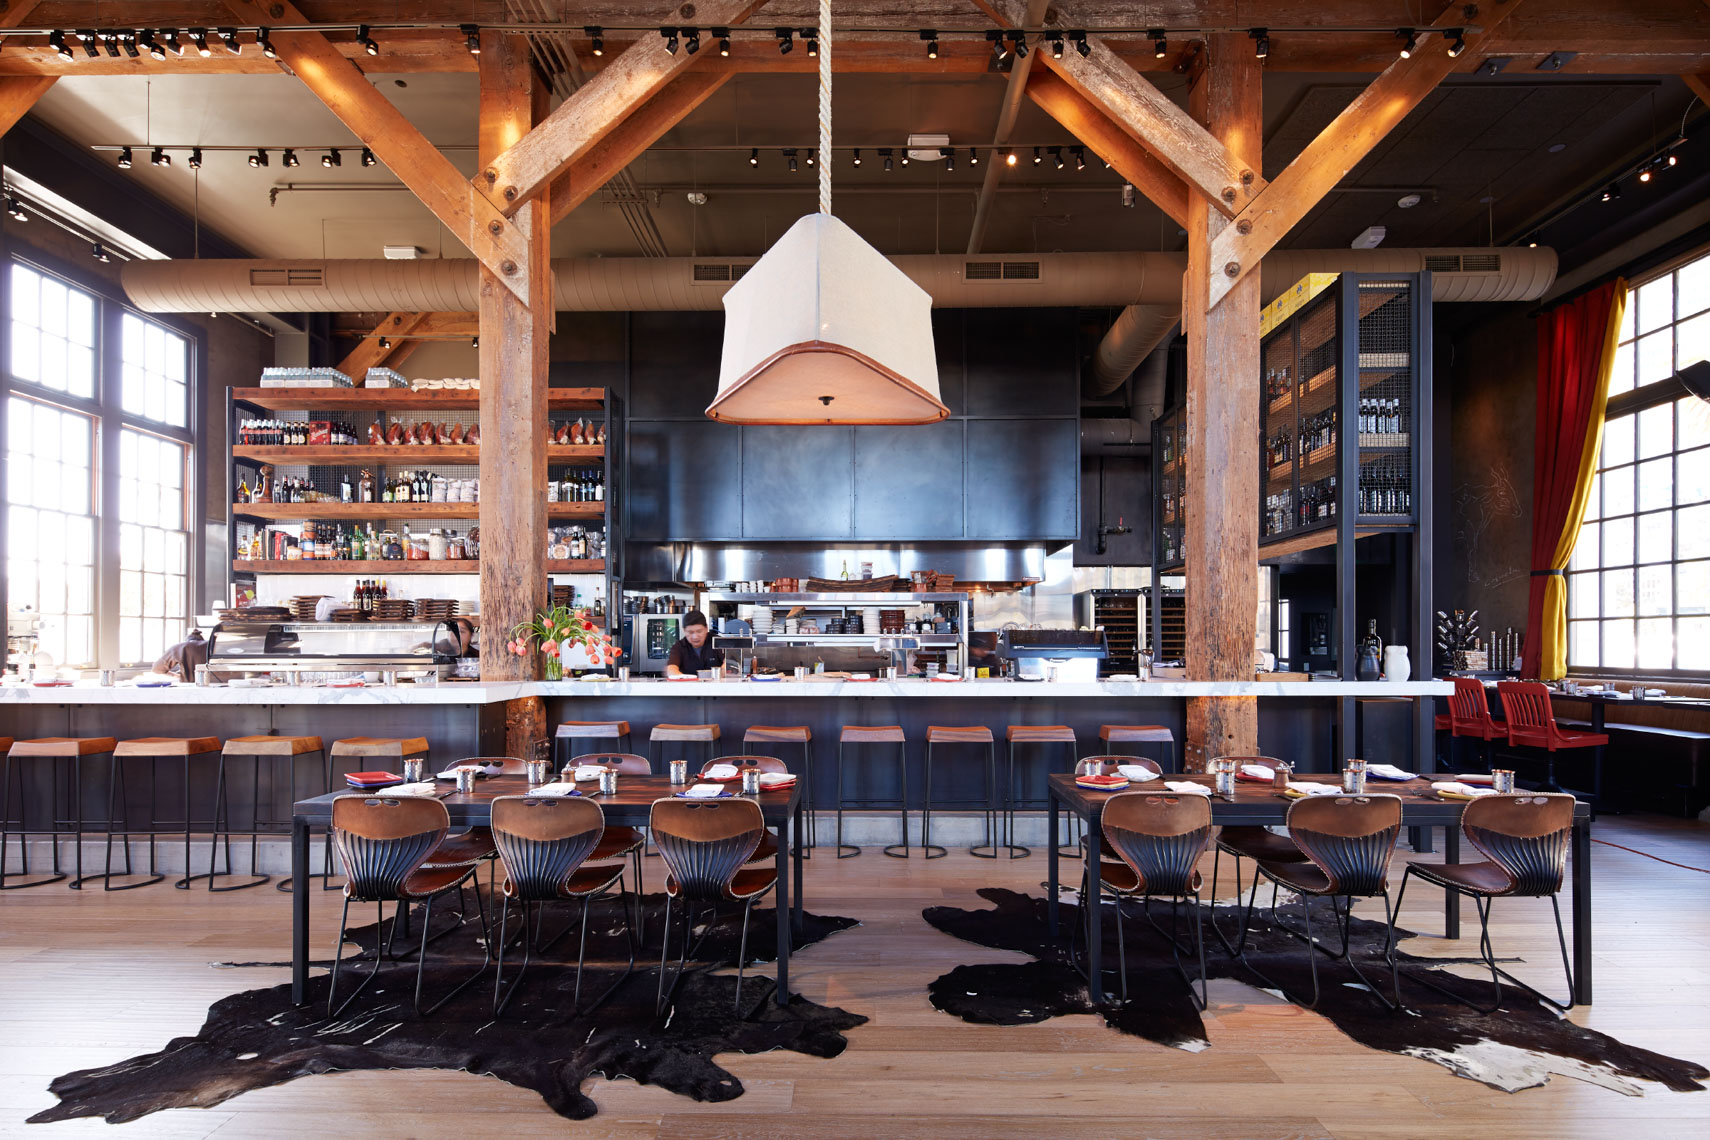 dining and restaurant area with high ceilings and cow fur rugs San Francisco interior photographer